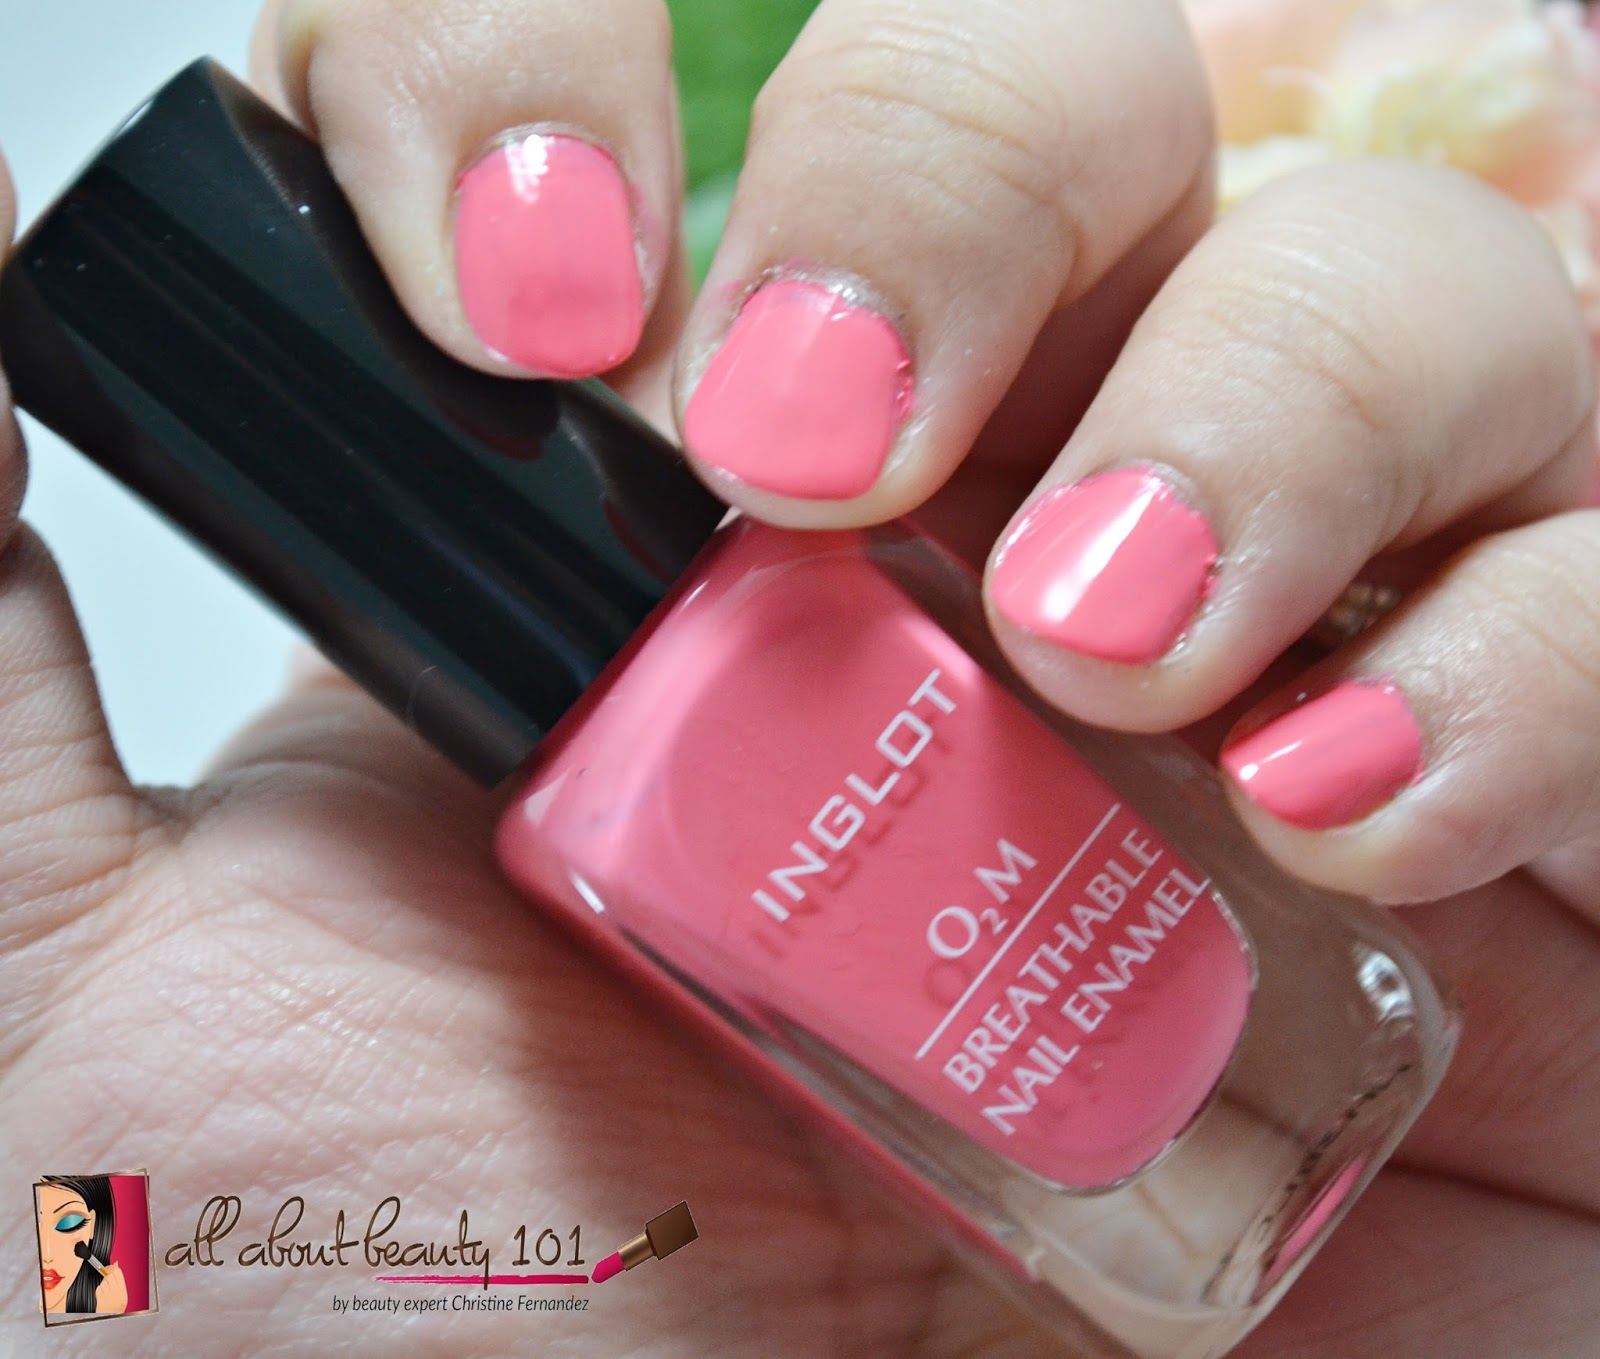 Inglot: O2M Breathable Nail Enamel in 683 | All About Beauty 101